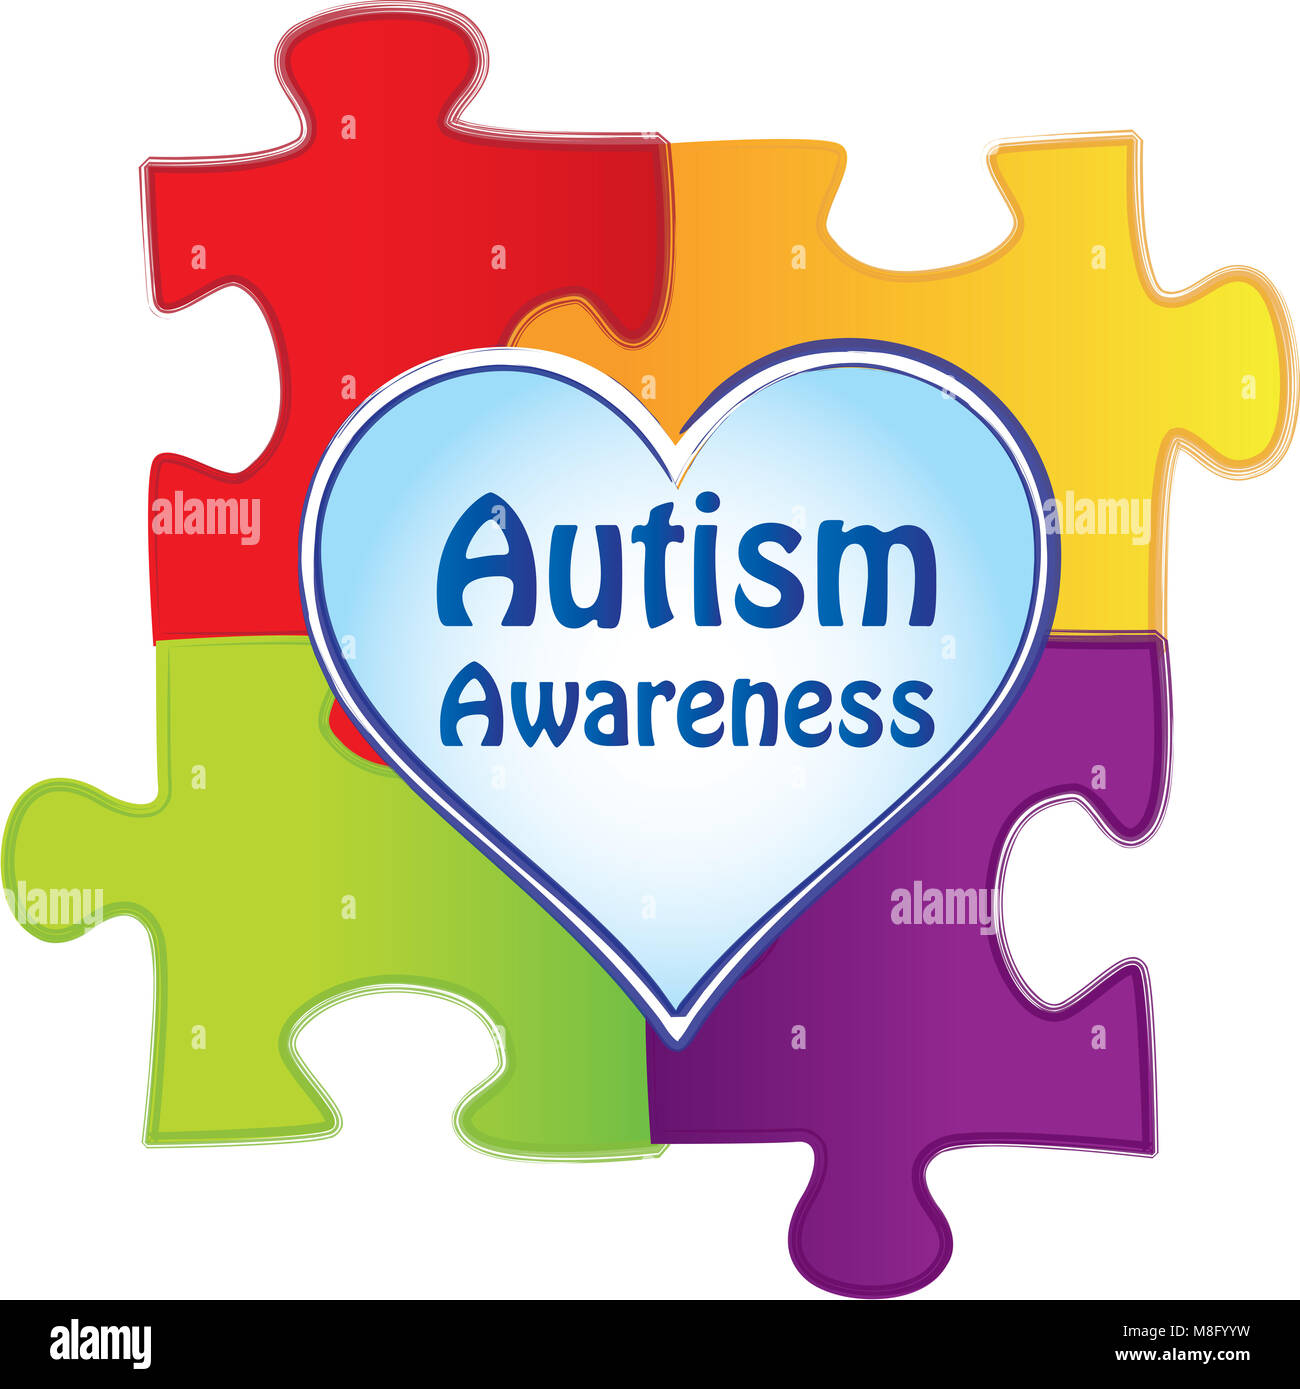 Autism Awareness Puzzle Pieces with Heart - Stock Image